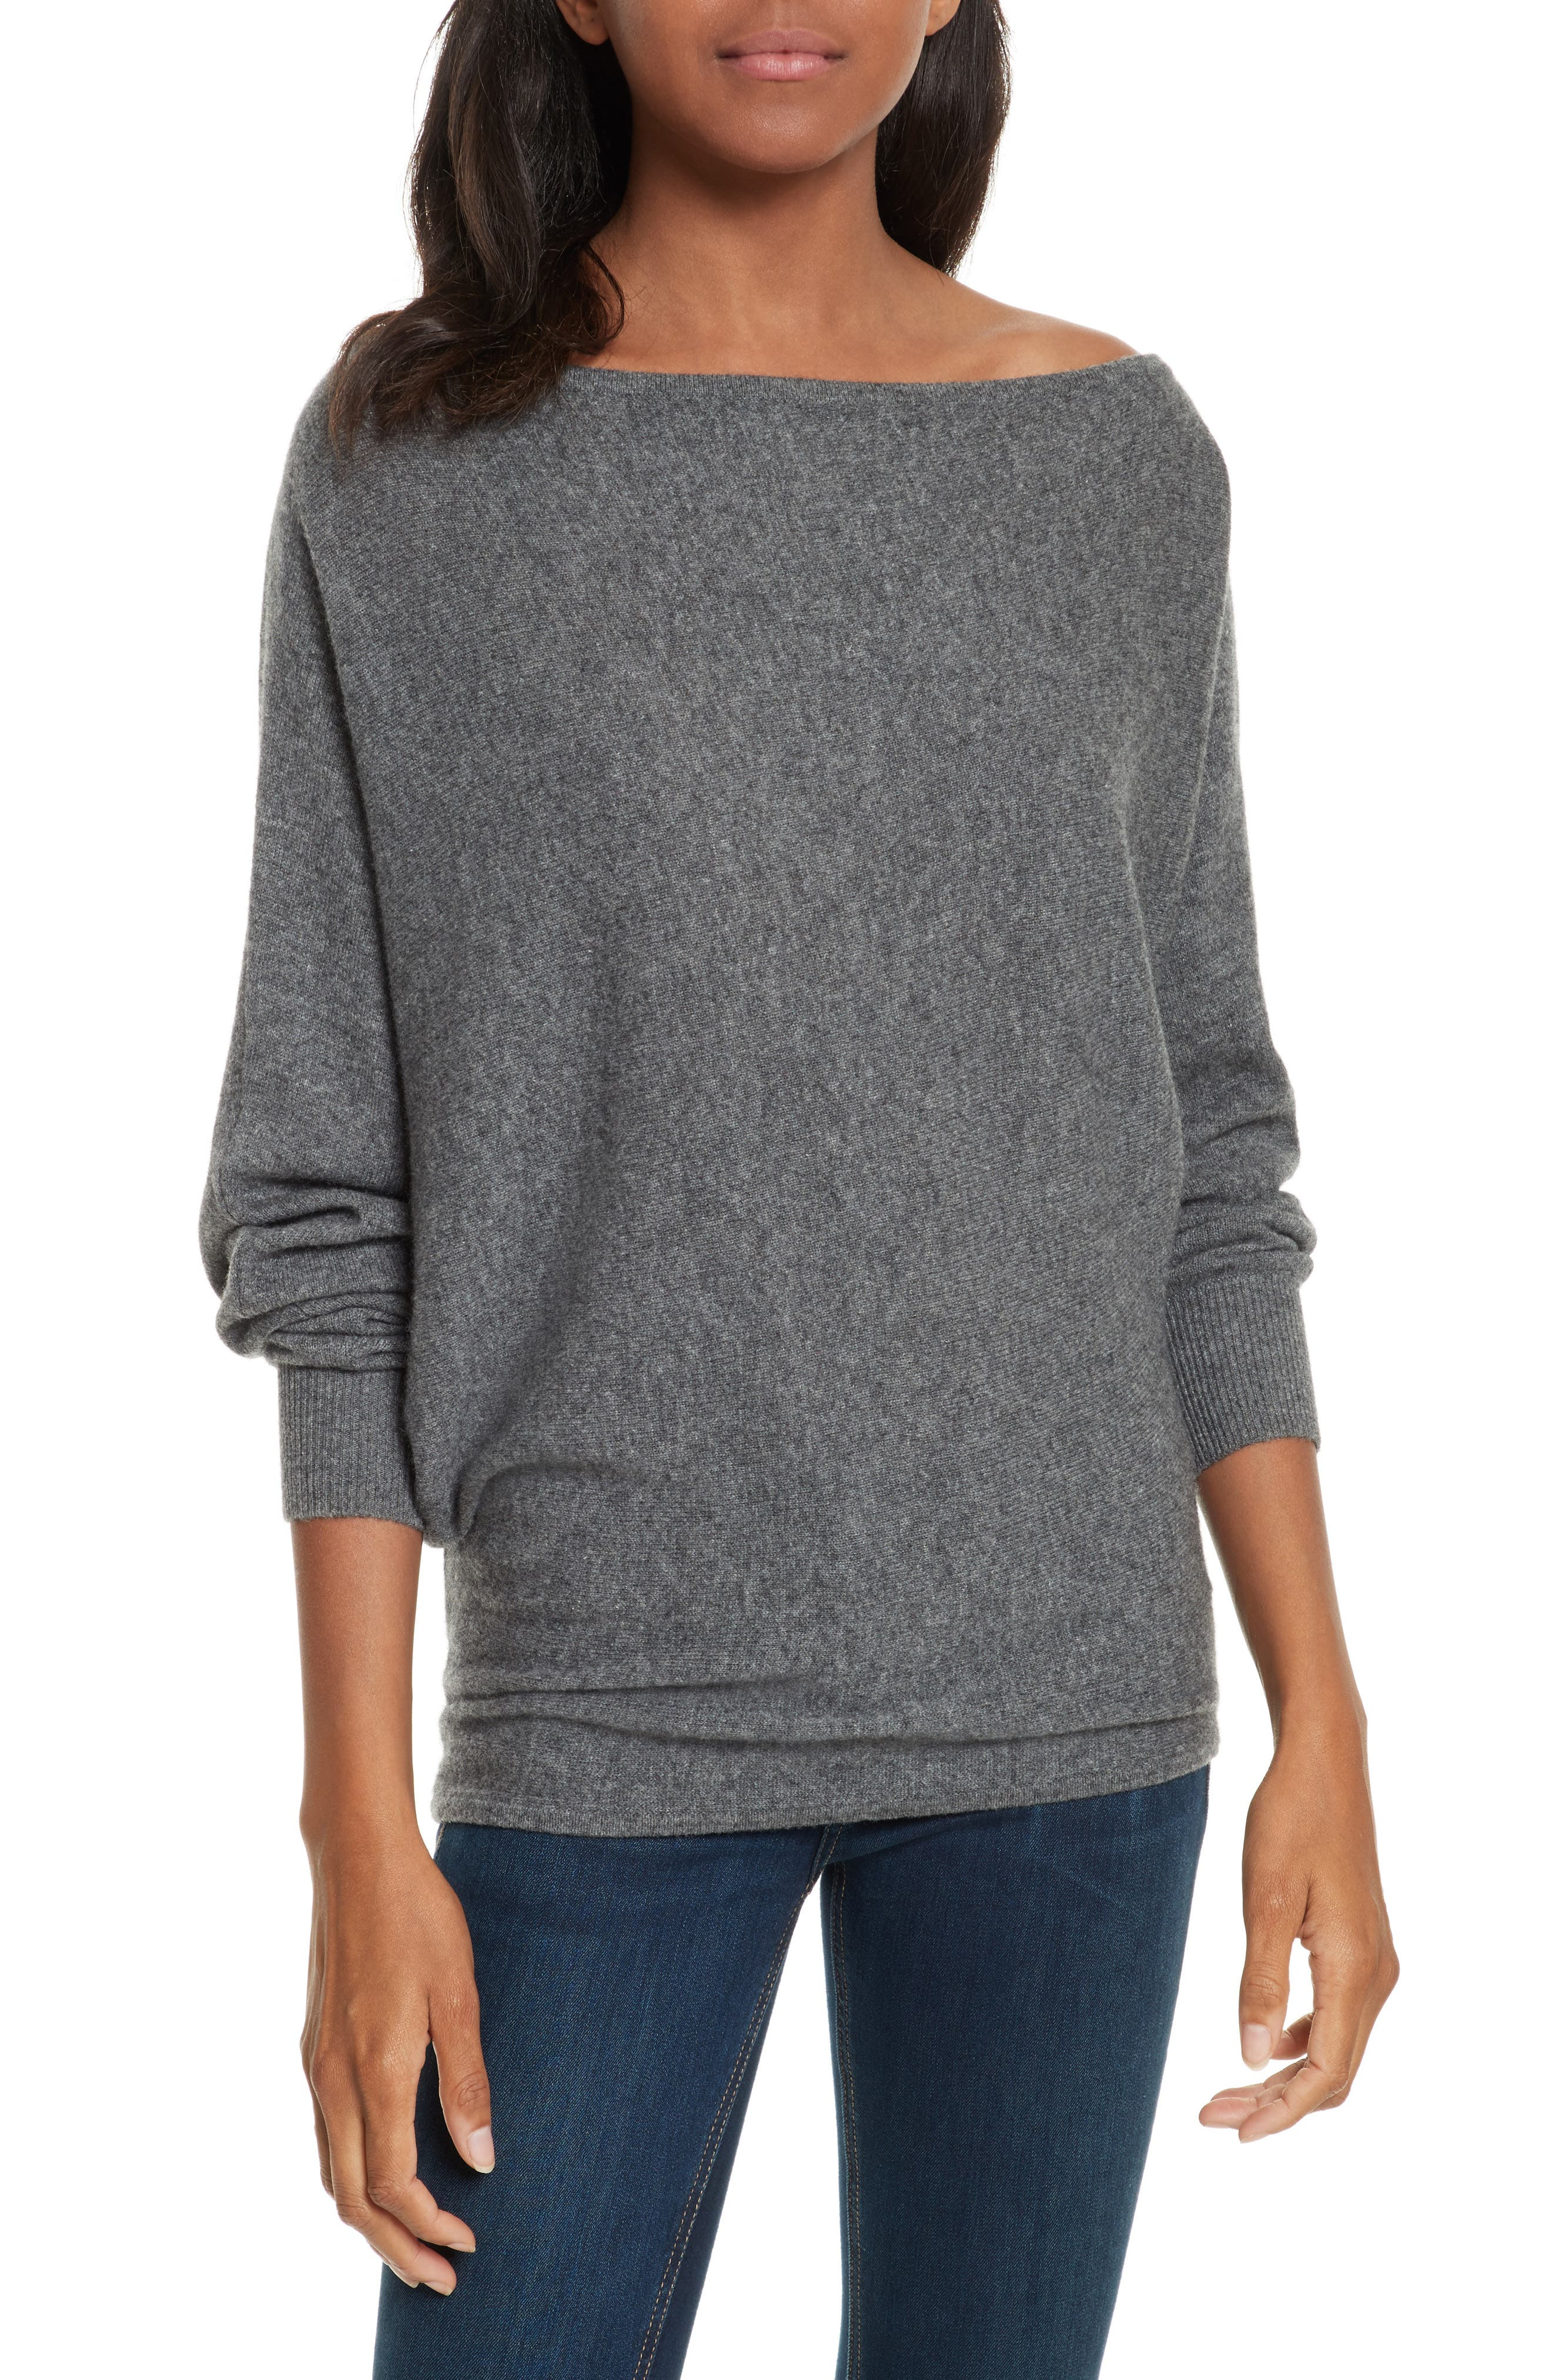 Joie Helice Convertible Cashmere Sweater